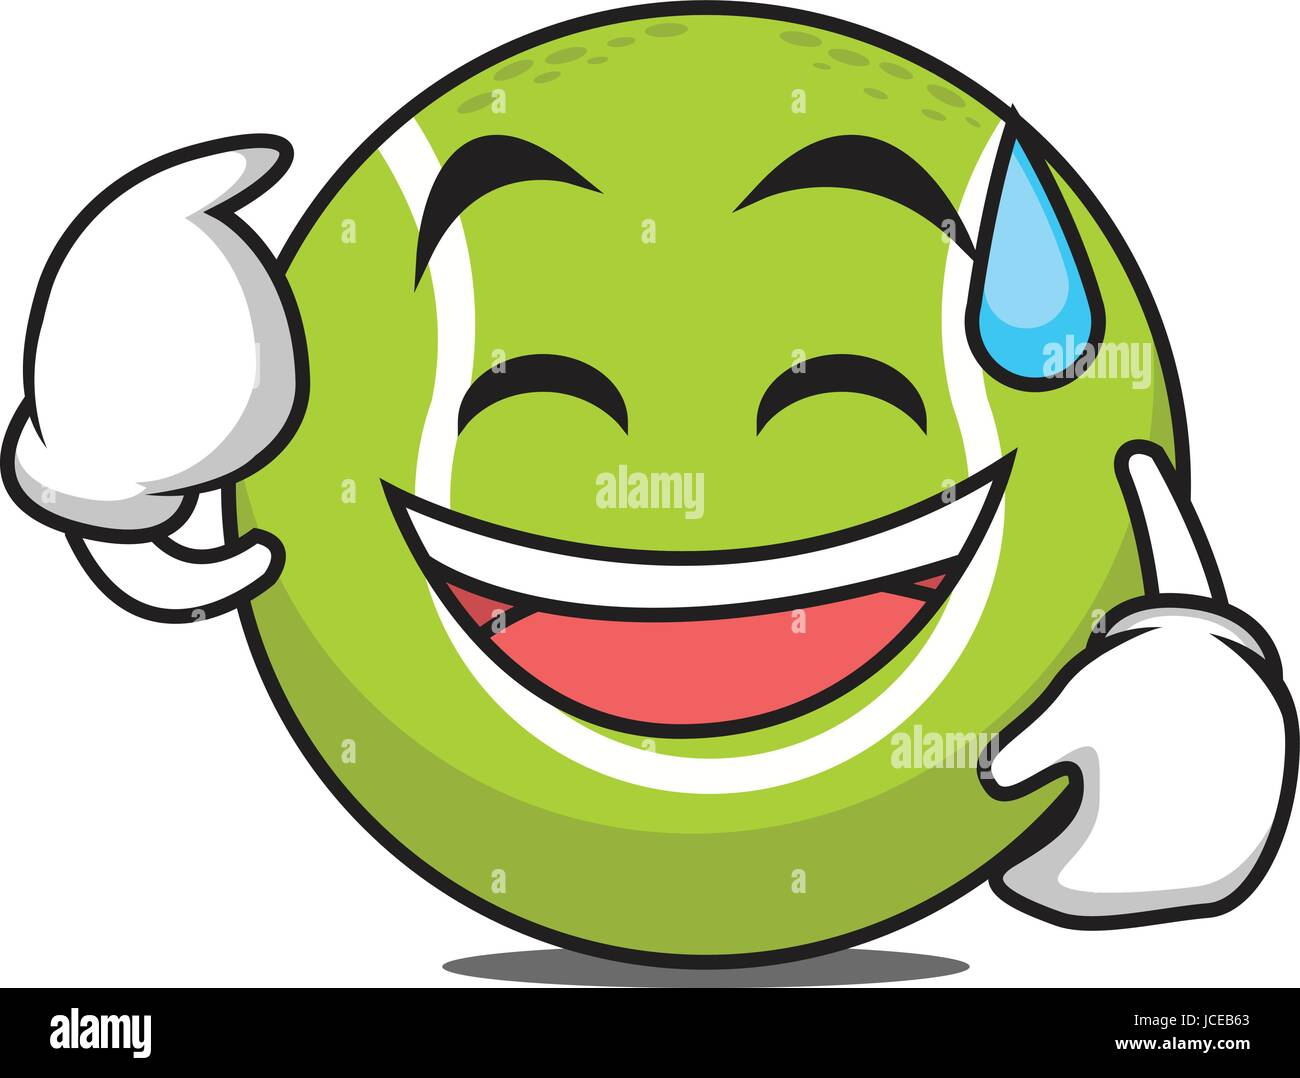 Sweat smile tennis ball character - Stock Vector